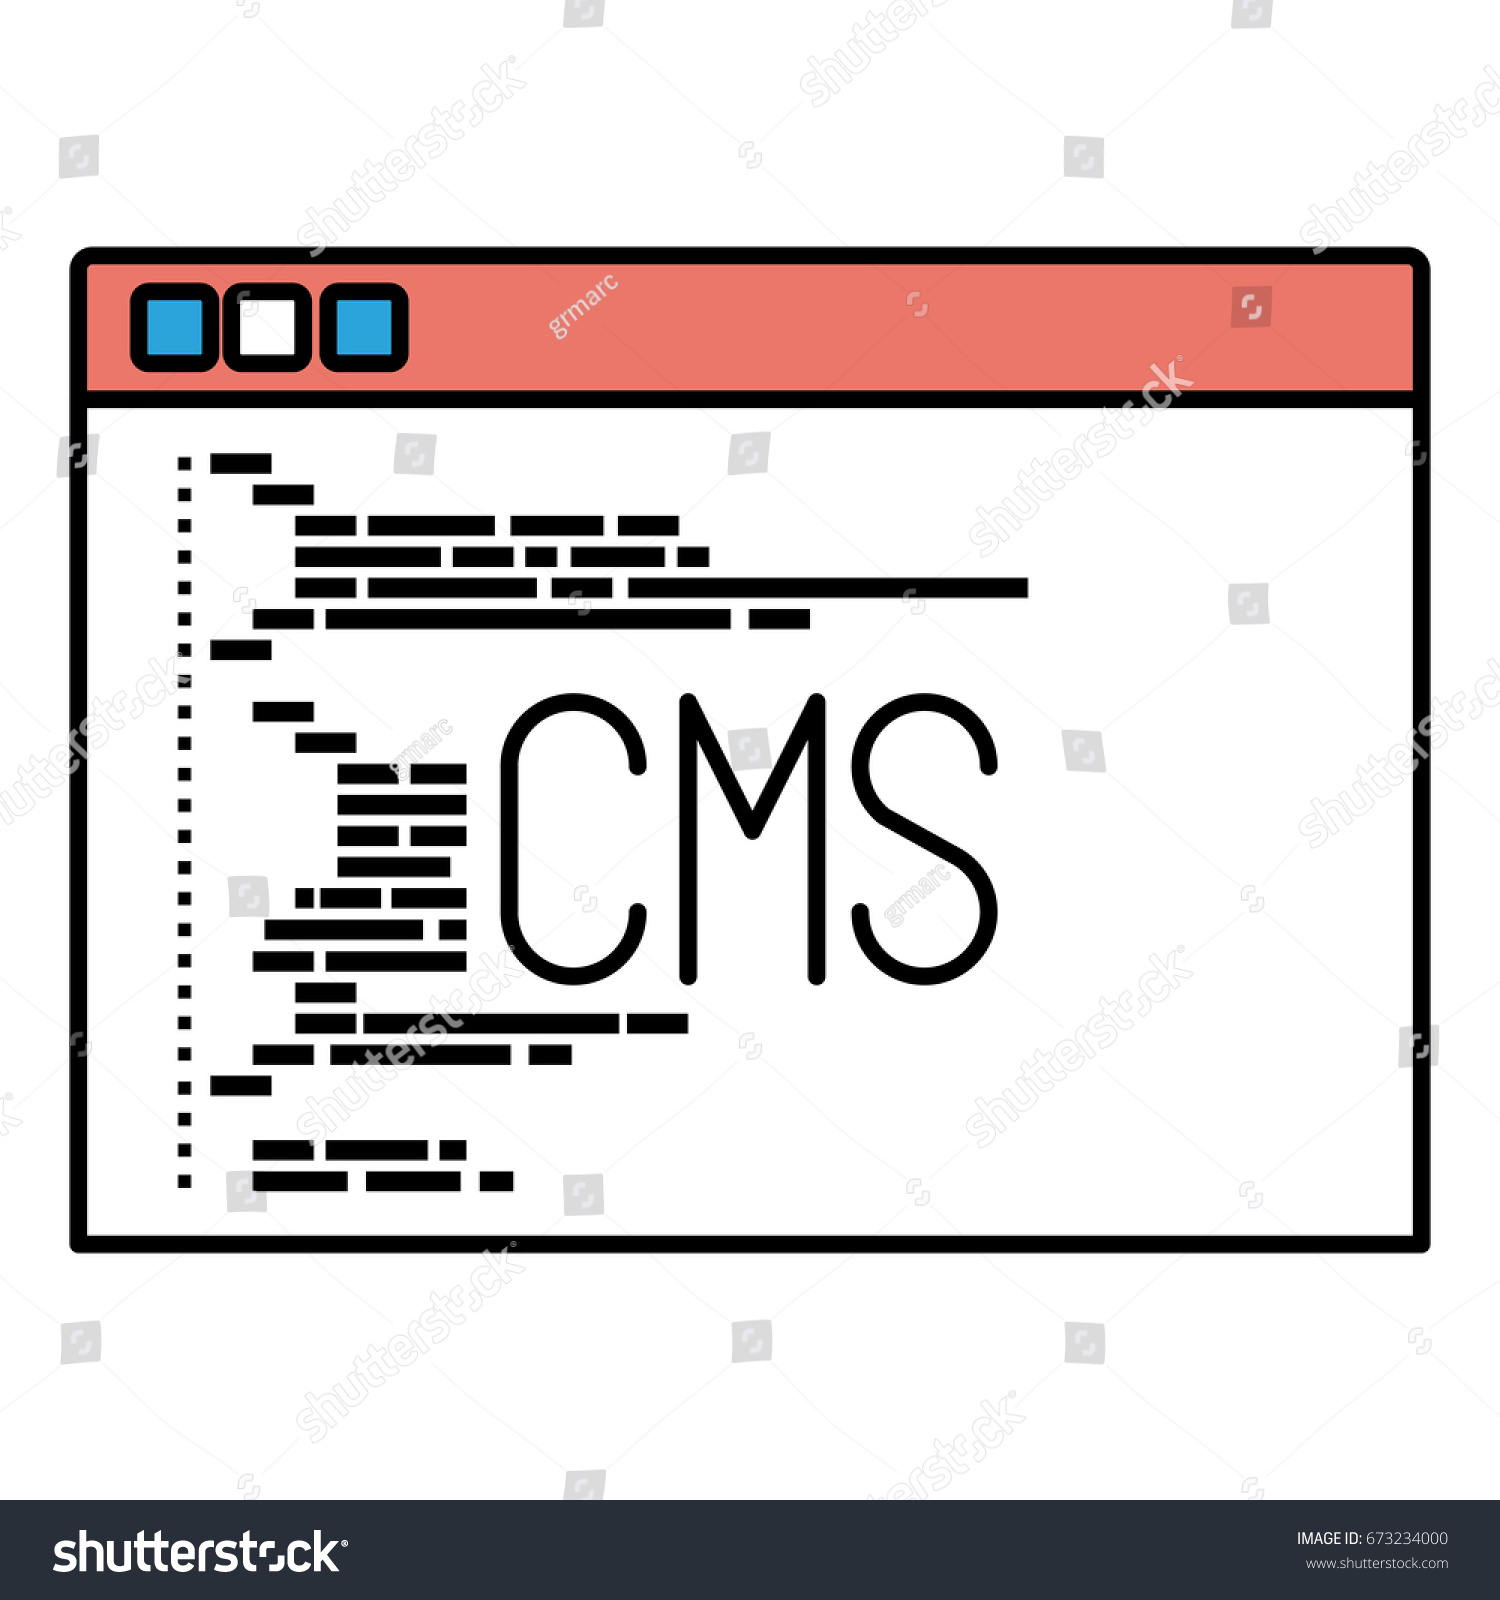 Cms Script Silhouette Color Sections Programming Window Script Stock Vector